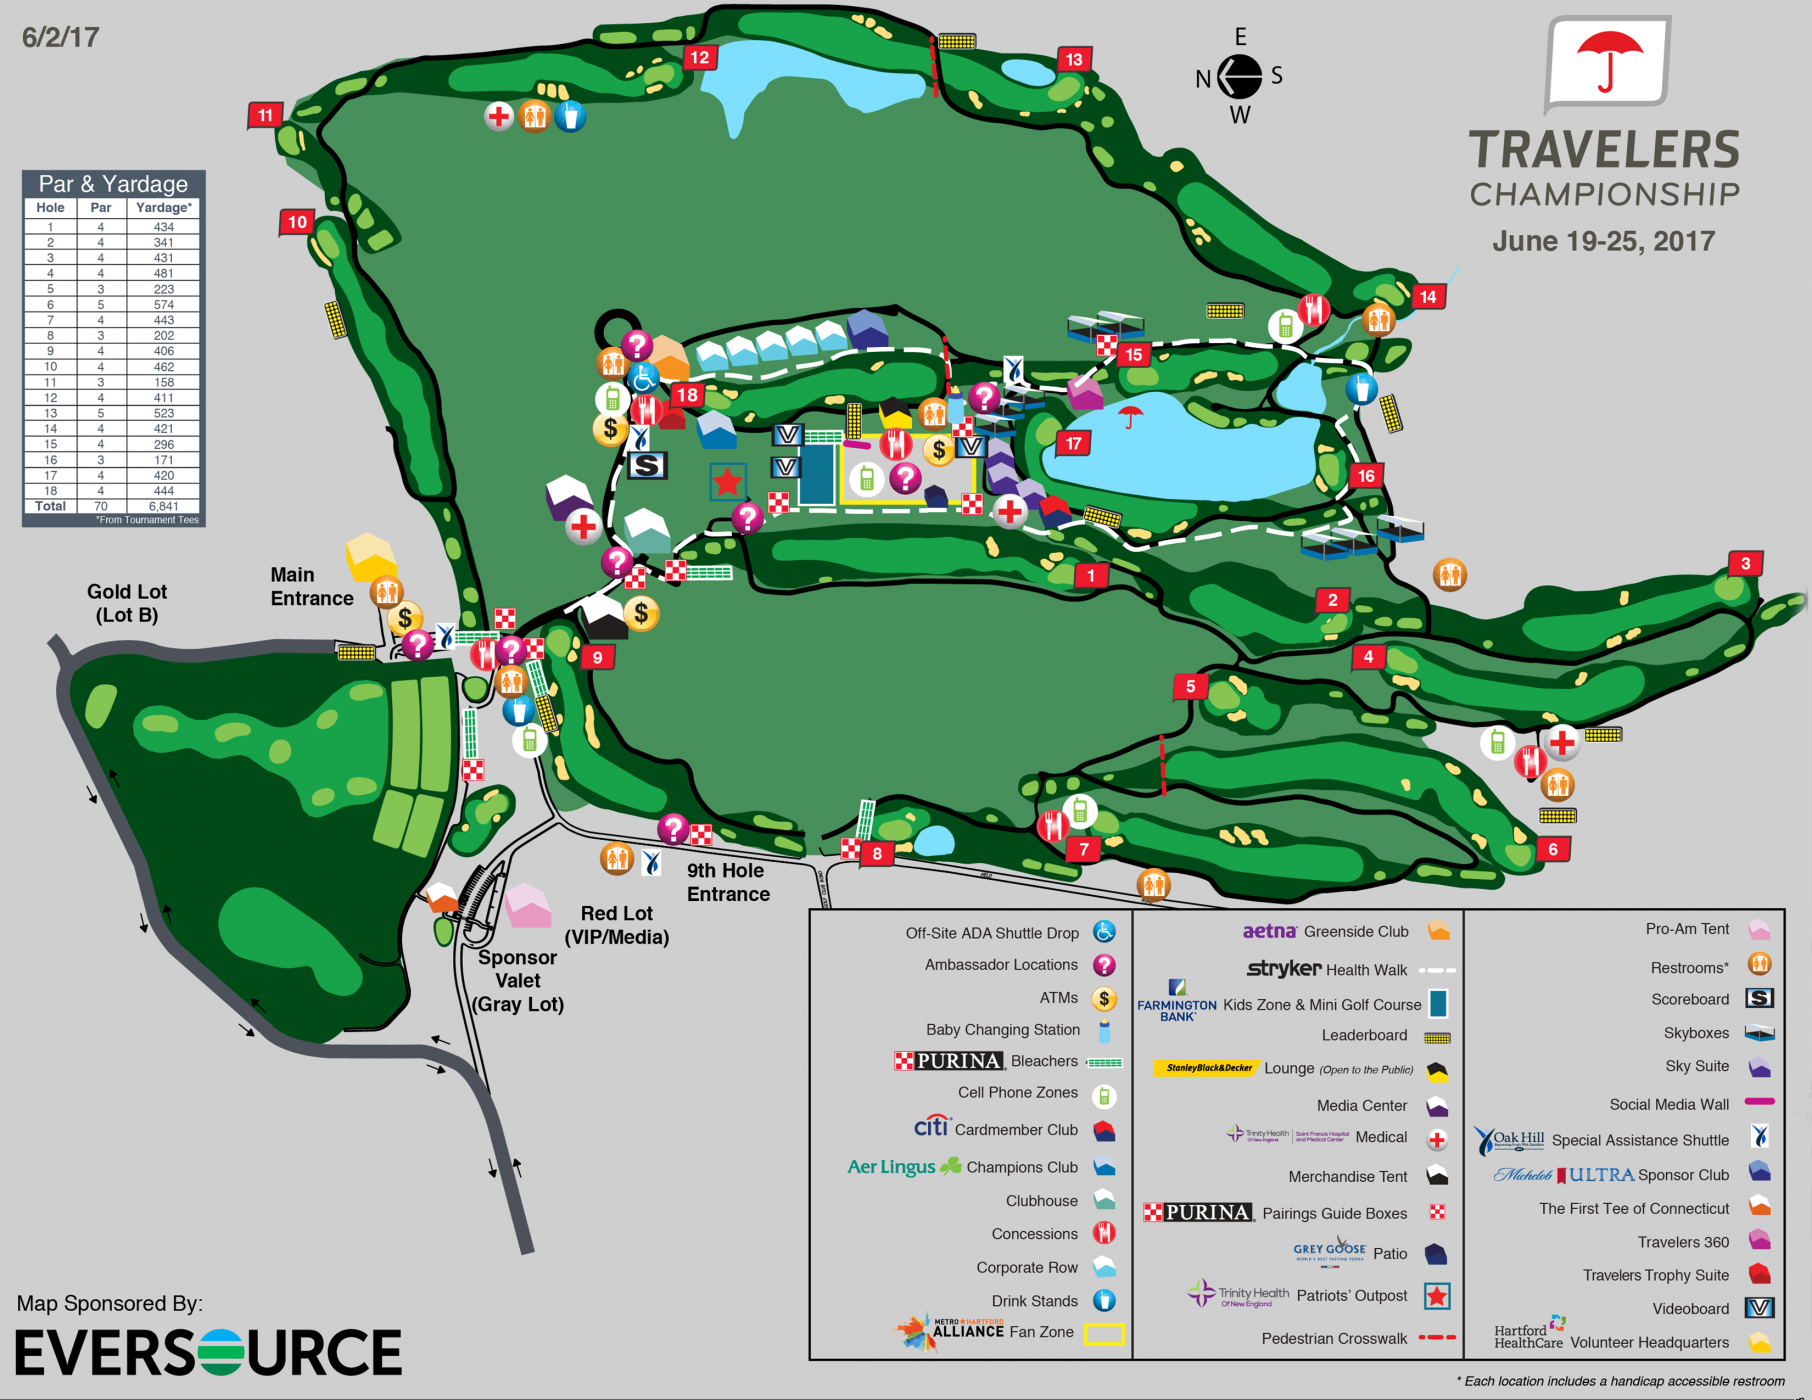 Course map travelers championship tpc river highlands tpc river highlands is a par 70 6841 yard course located on the banks of the connecticut river in cromwell connecticut 10 miles south of hartford sciox Images